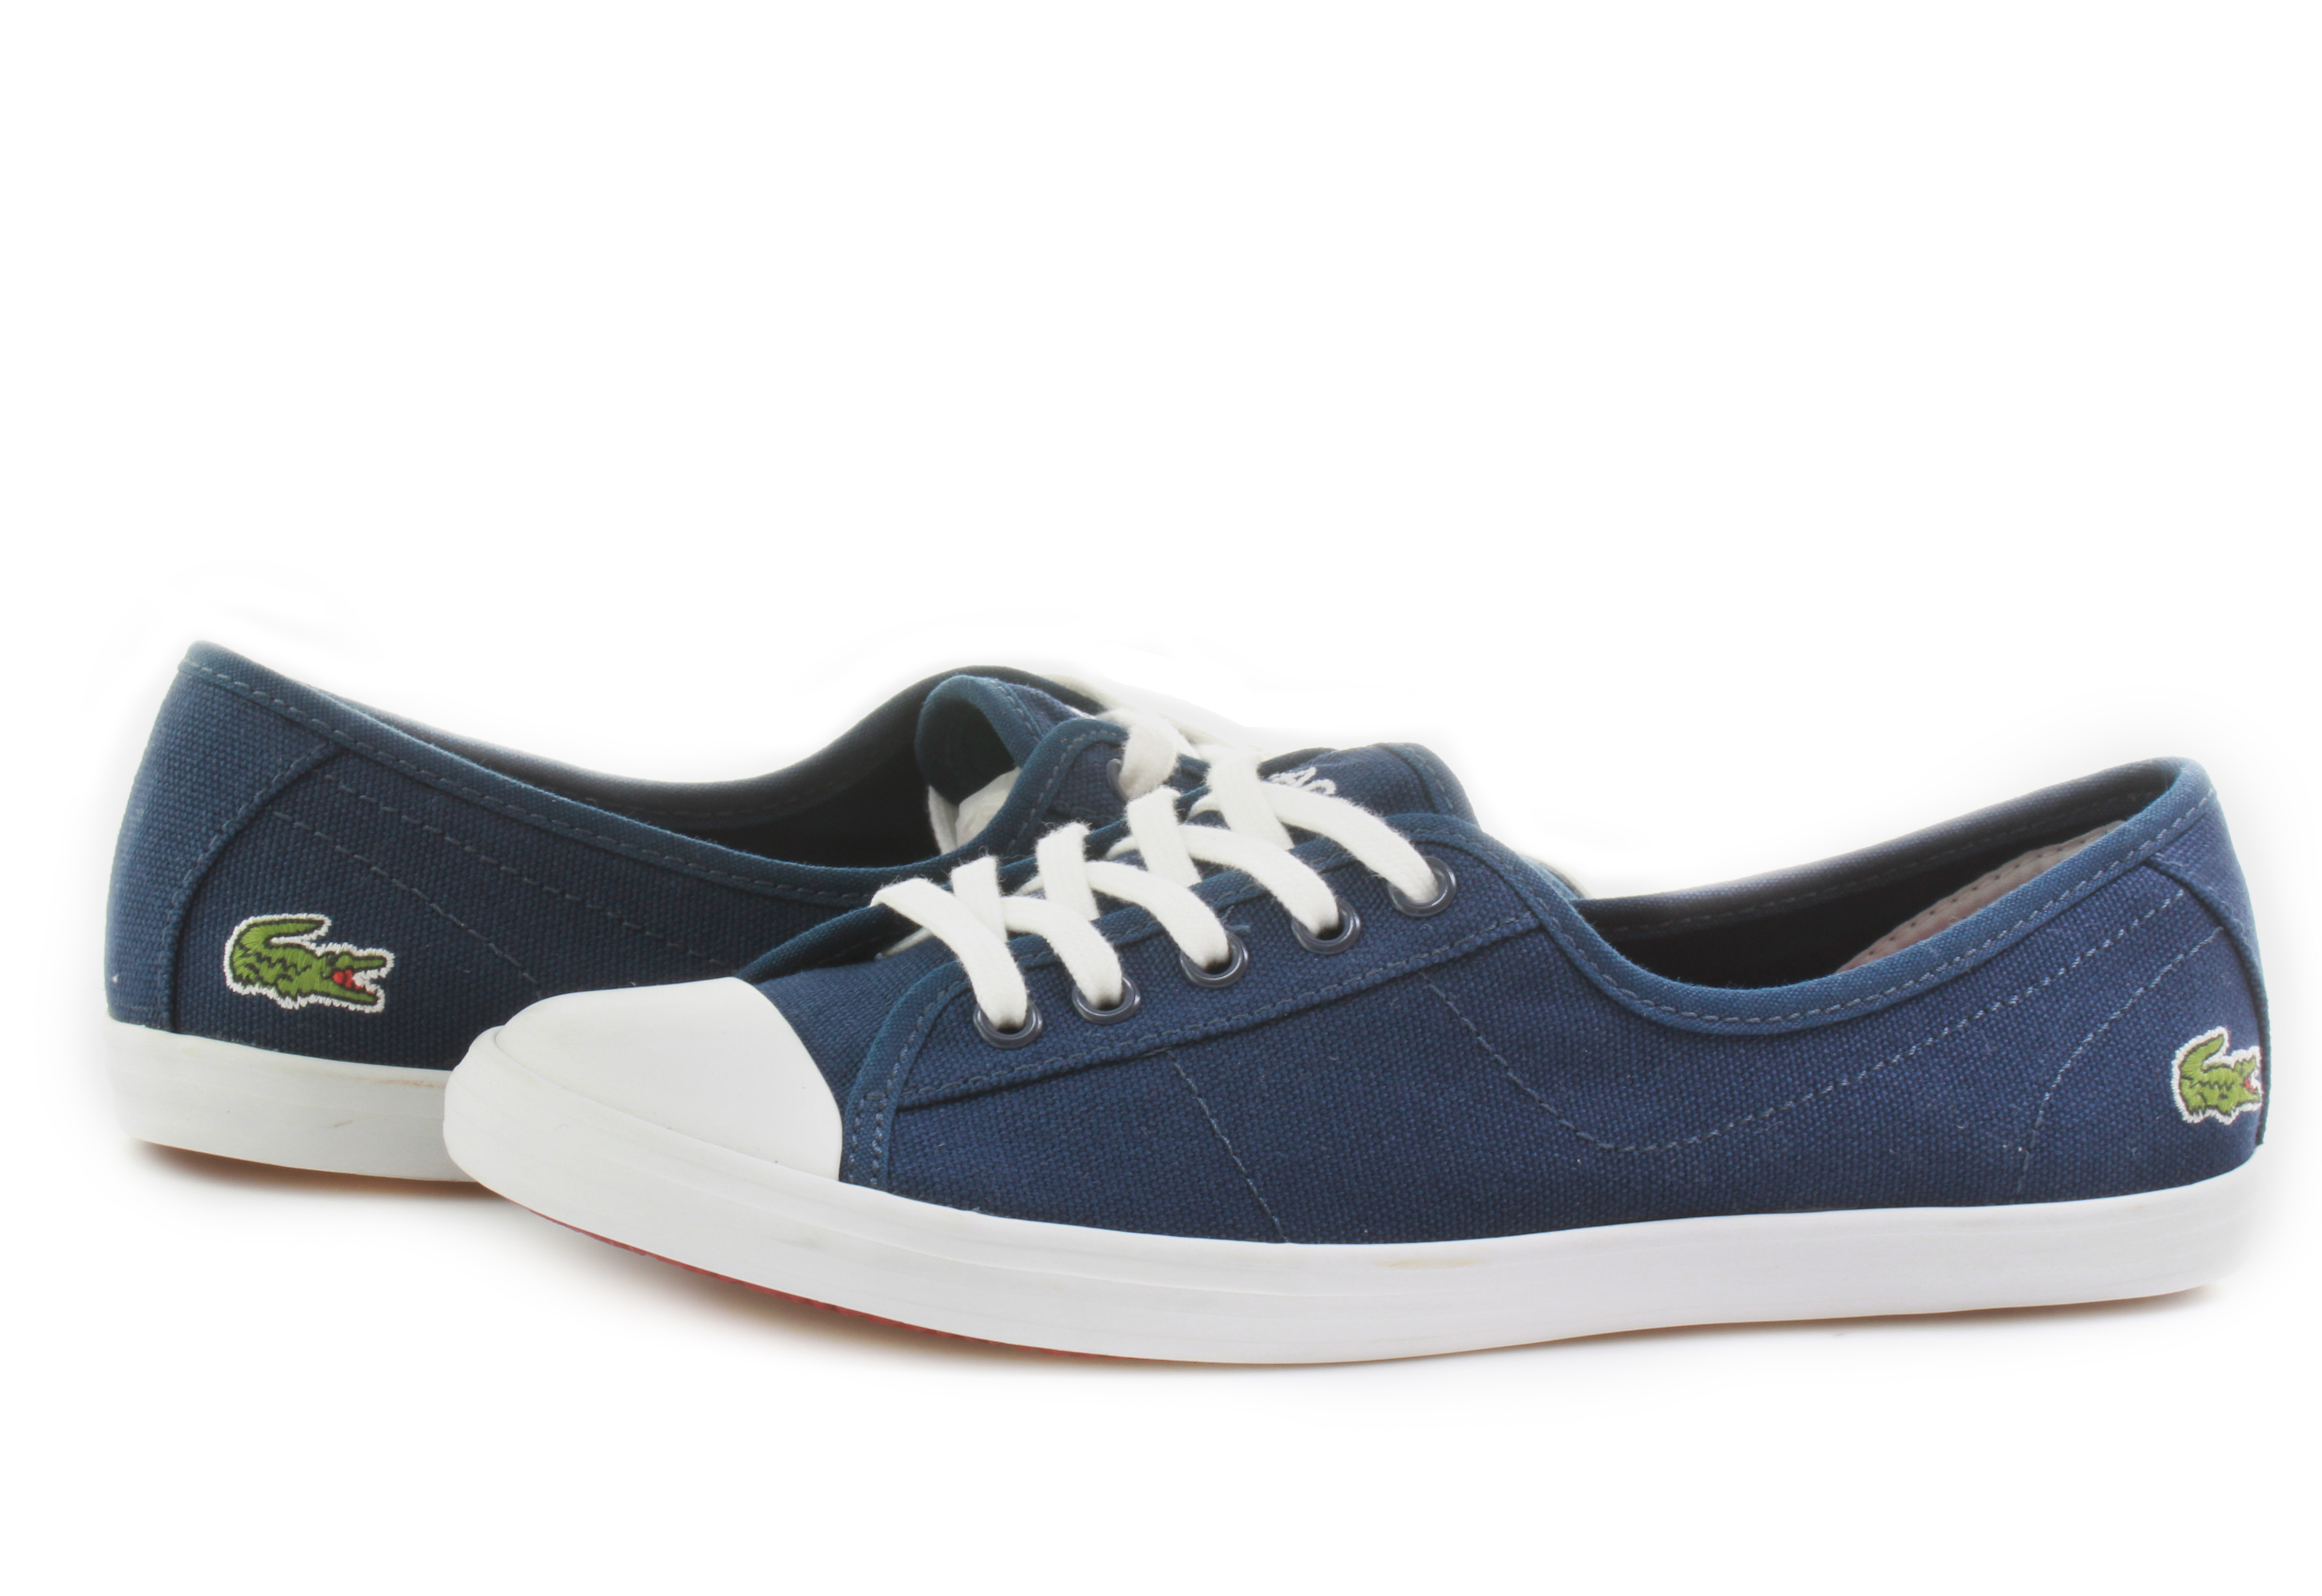 Lacoste online shopping in india